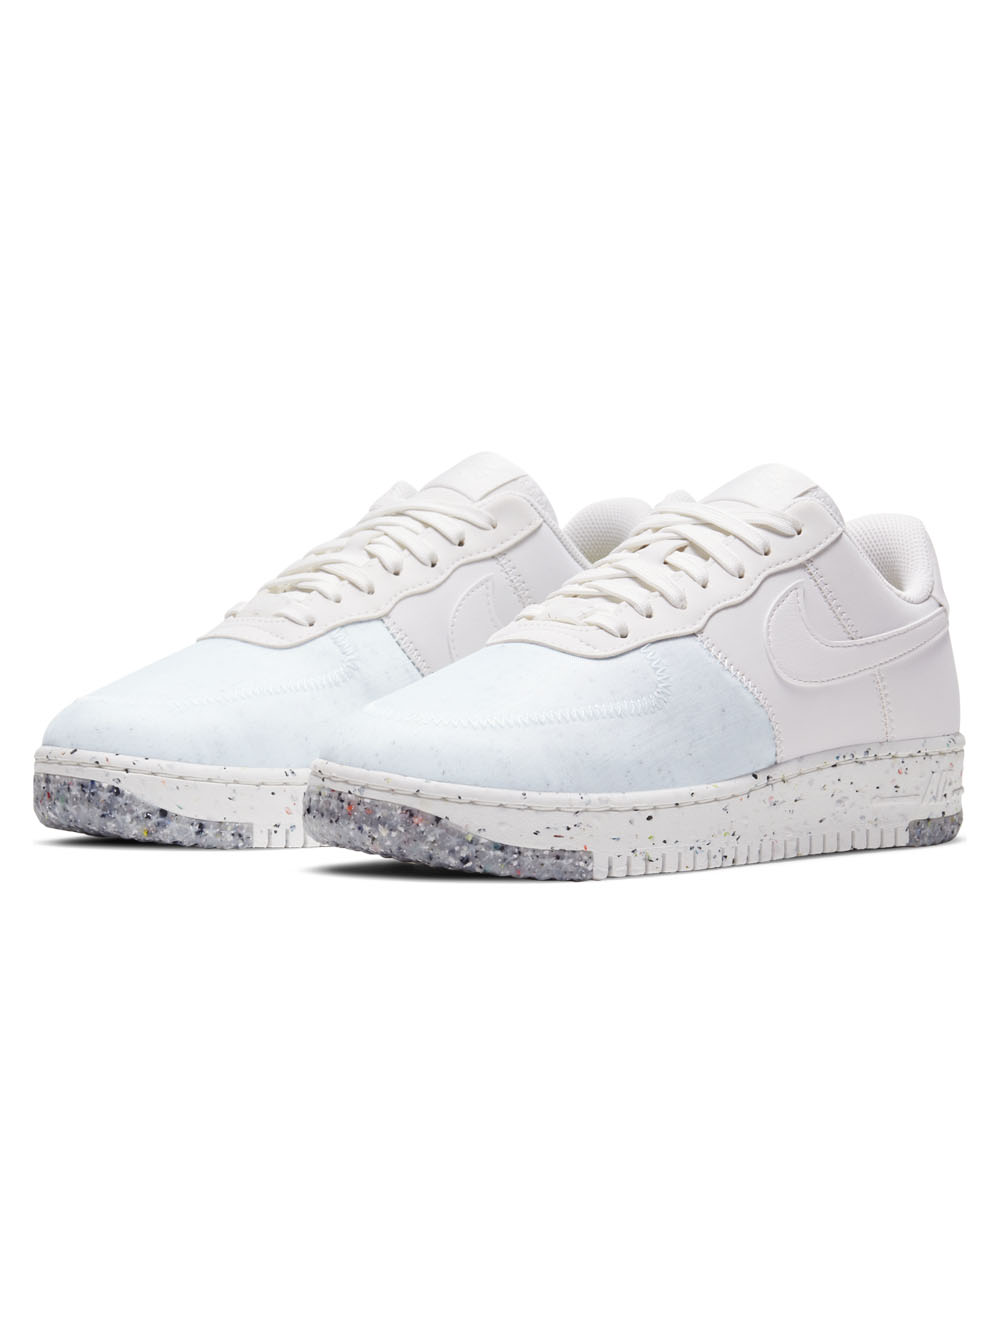 【NIKE】W NIKE AIR FORCE 1 CRATER(WHTxLBLU-23)